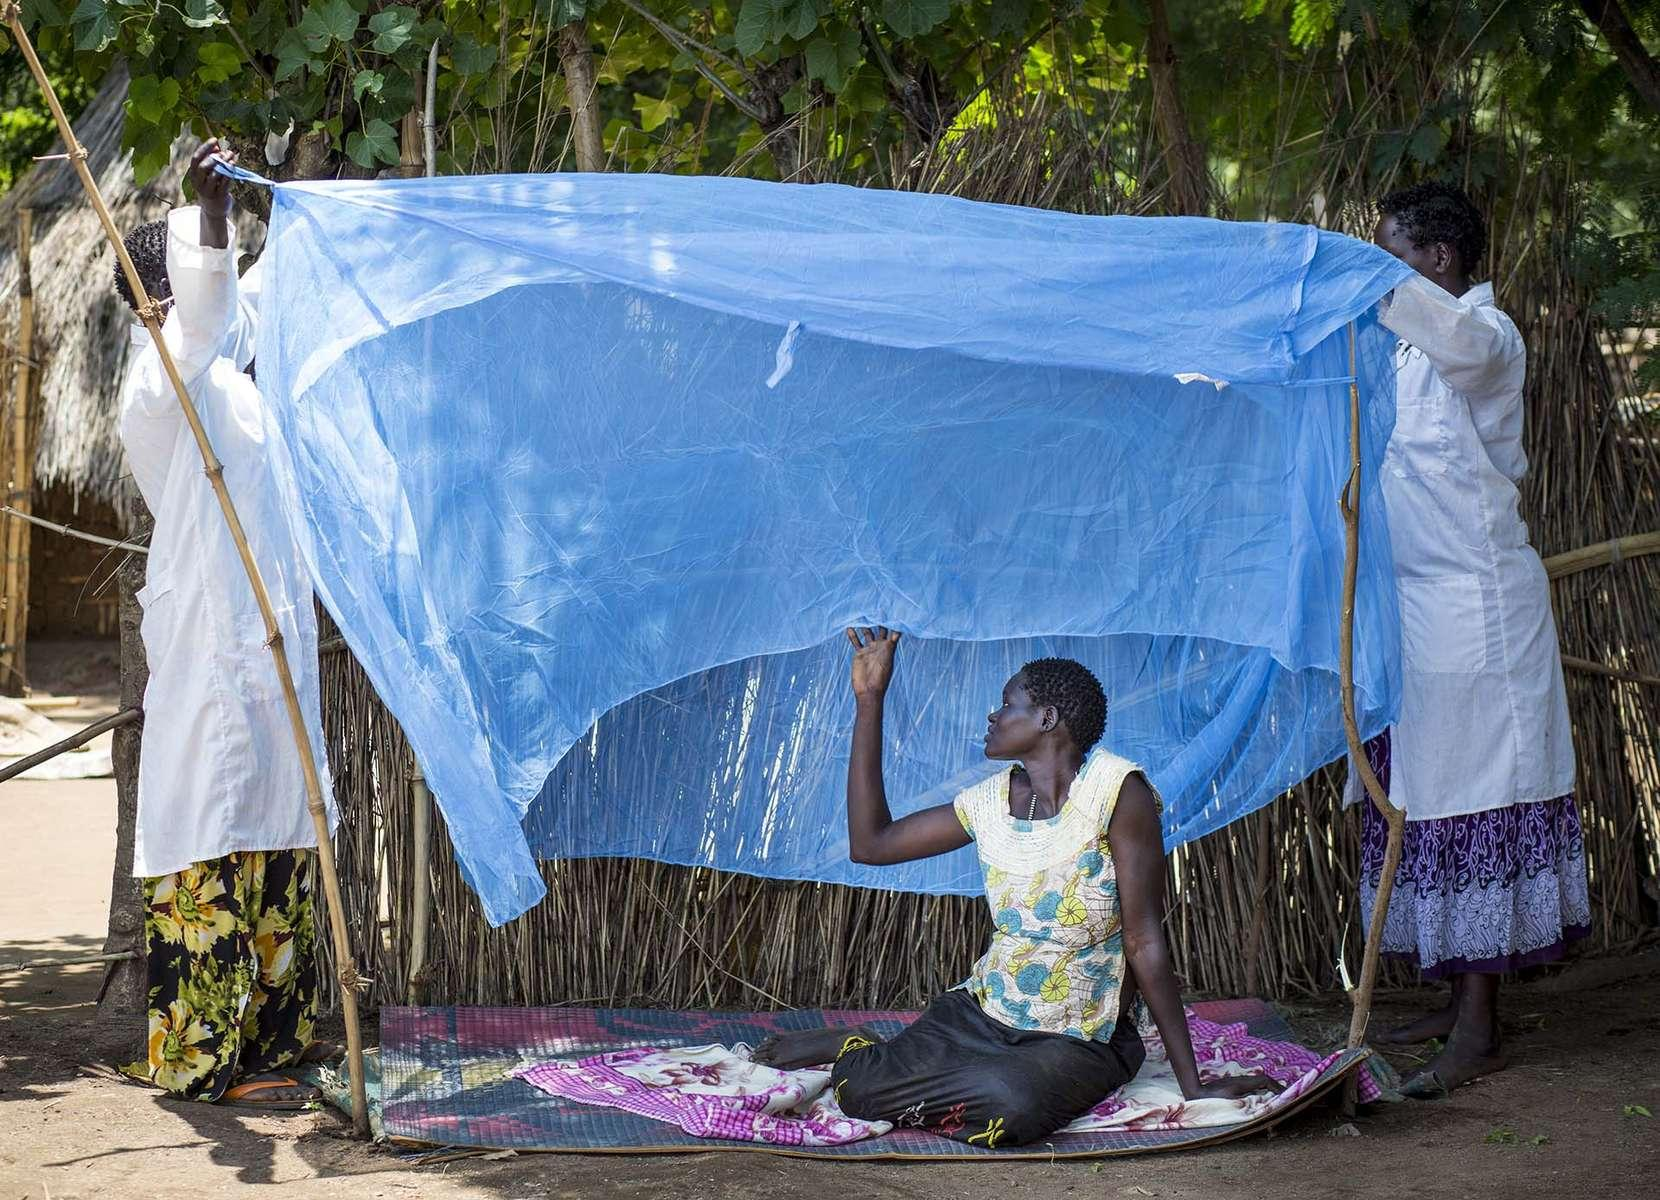 With the help of a pregnant woman, health extension workers Achang Objo, left, and Abang Obang, give a live demonstration of the proper use of mosquito net to the residents of Itang Woreda in Gambella State of Ethiopia, 29 August 2013.